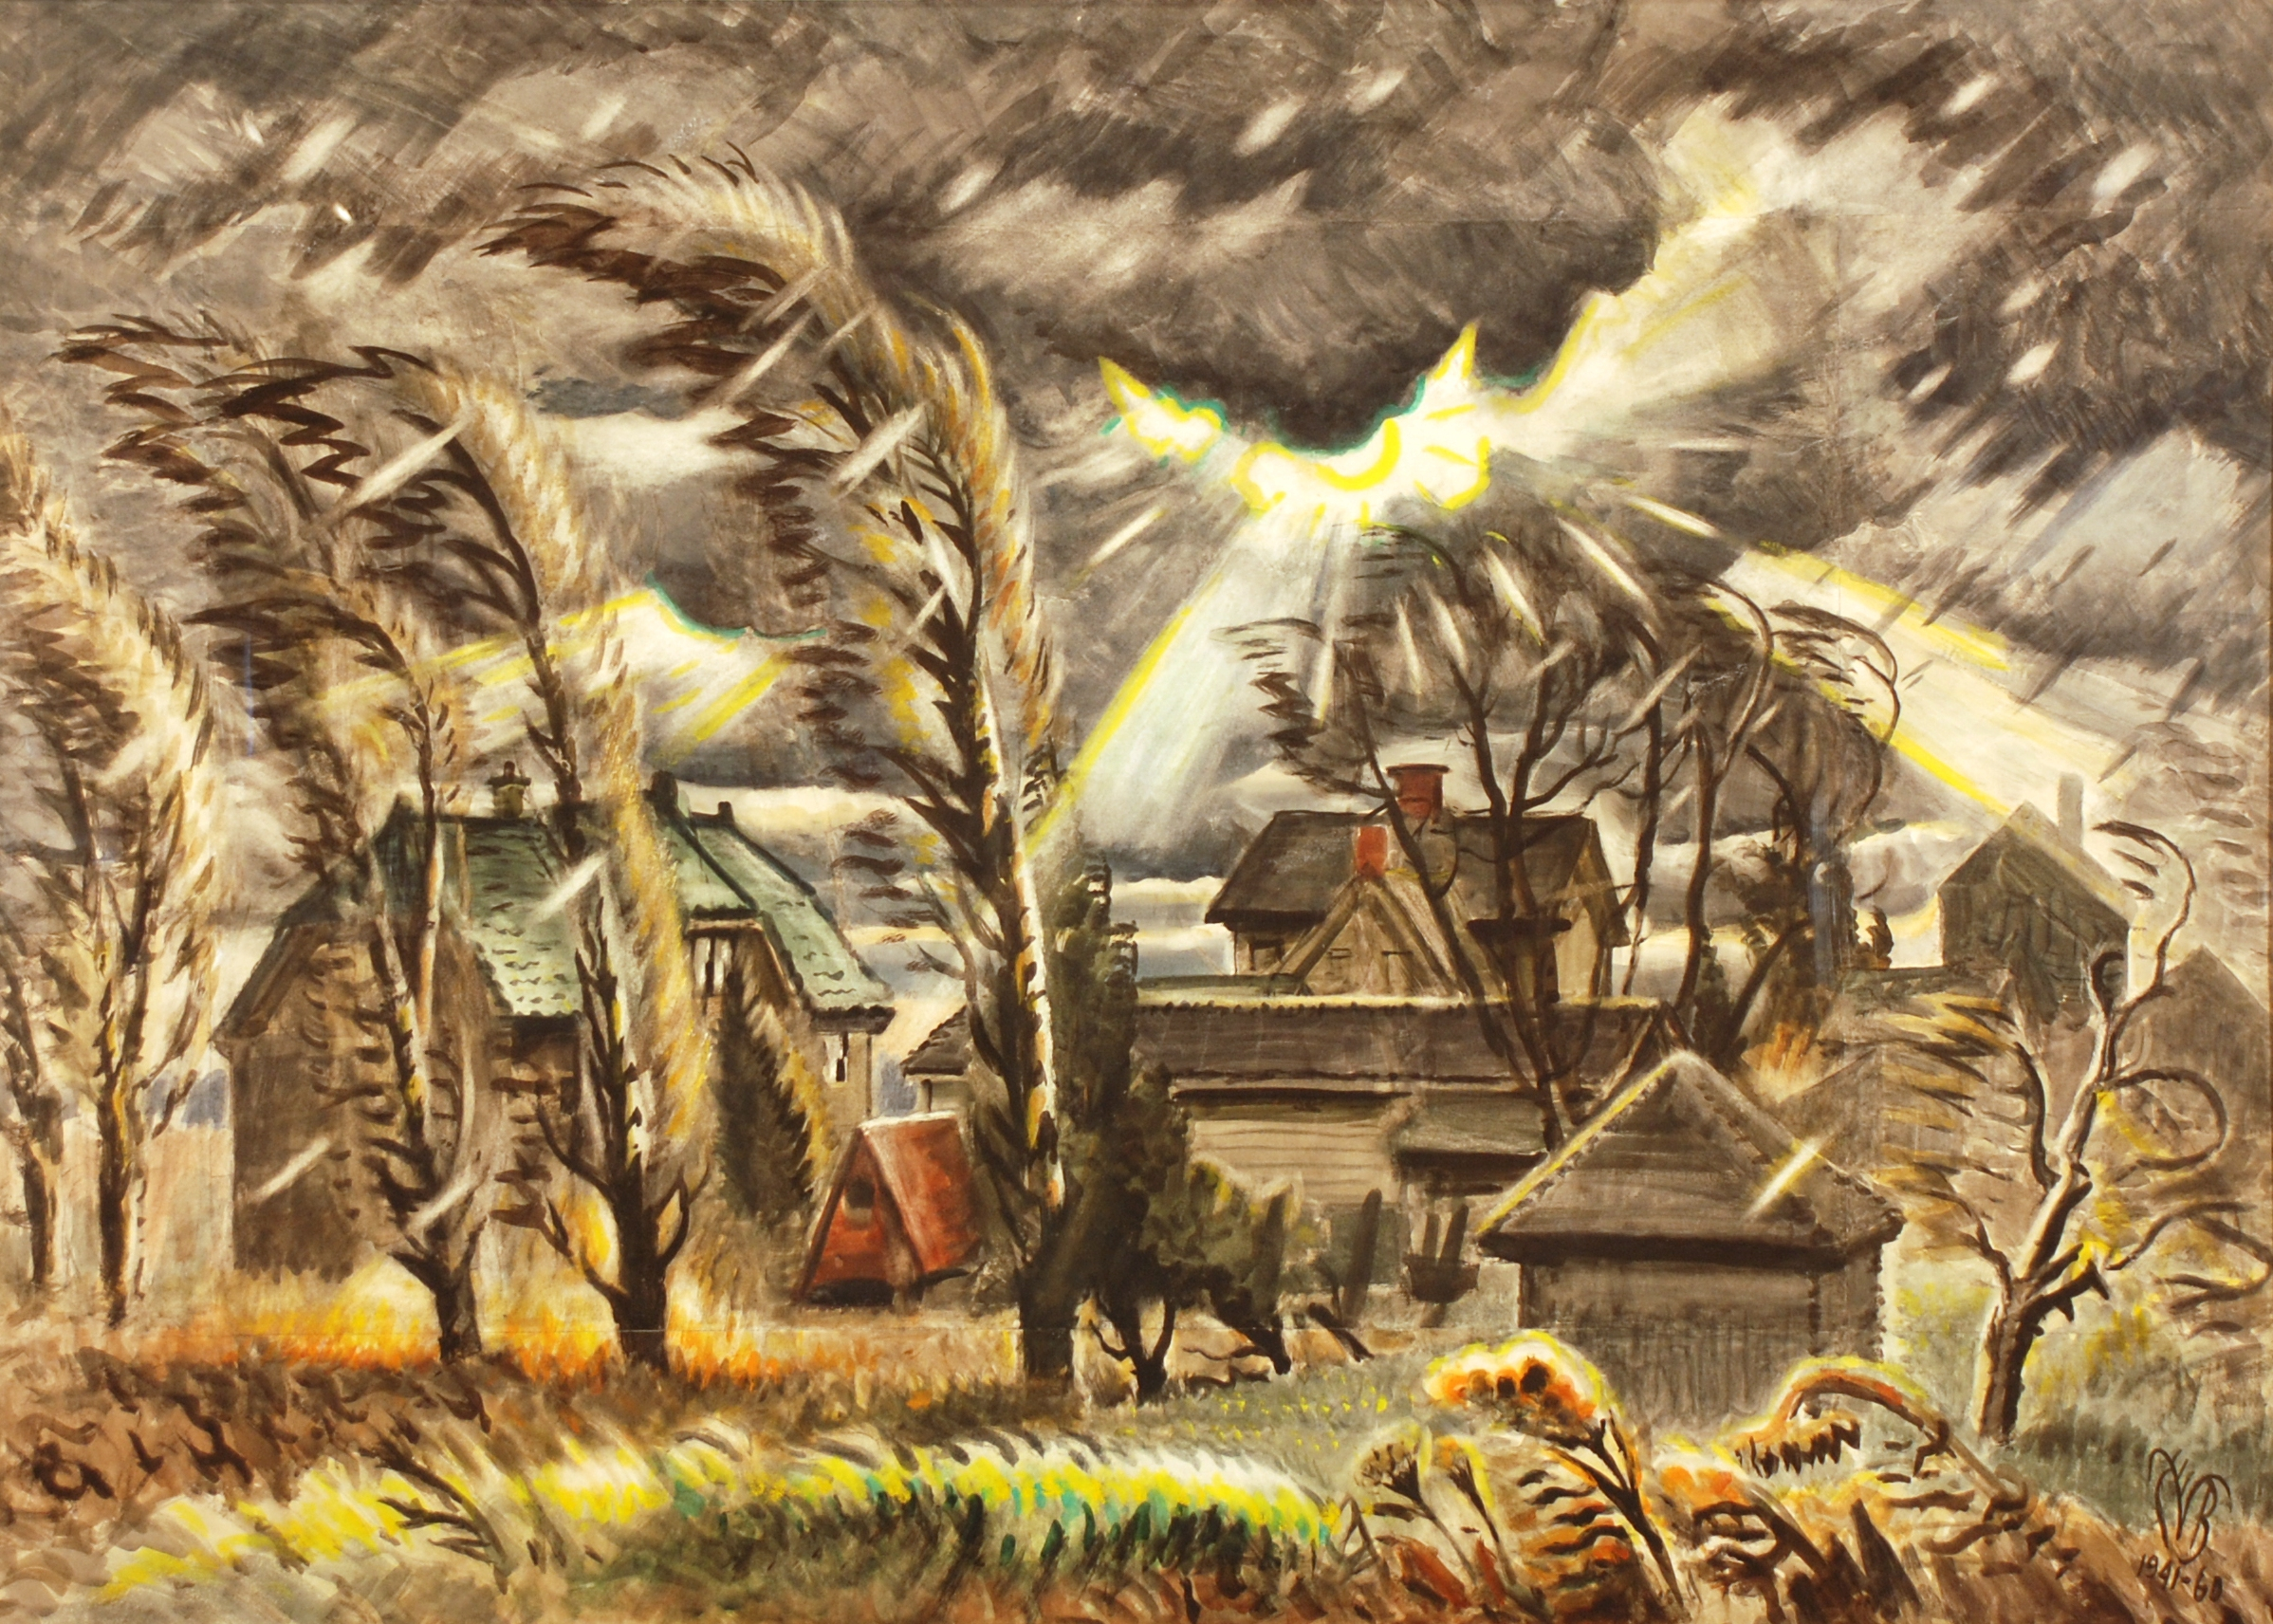 """""""December Storm,"""" a 1941-1960 painting by Charles E. Burchfield, was the centerpiece of the Burchfield Penney Art Center's first exhibition in 1966. It is also on view during the center's recreation of that exhibition to mark its 50th anniversary."""